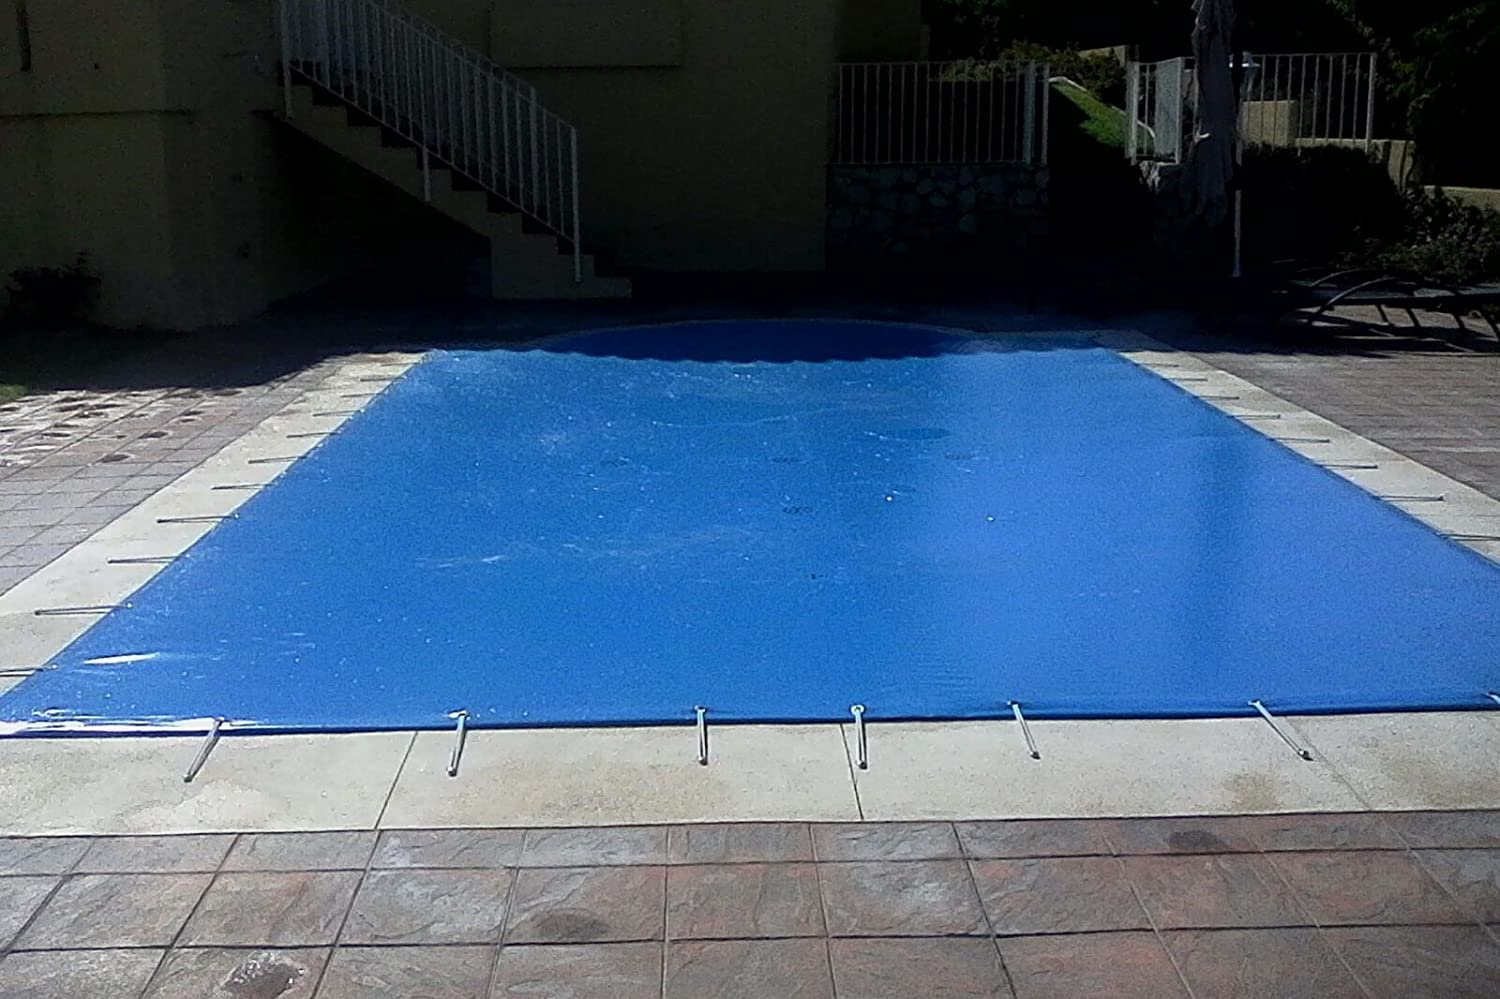 International Cover Pool Lona de Invierno para Piscinas de 4x8 ...